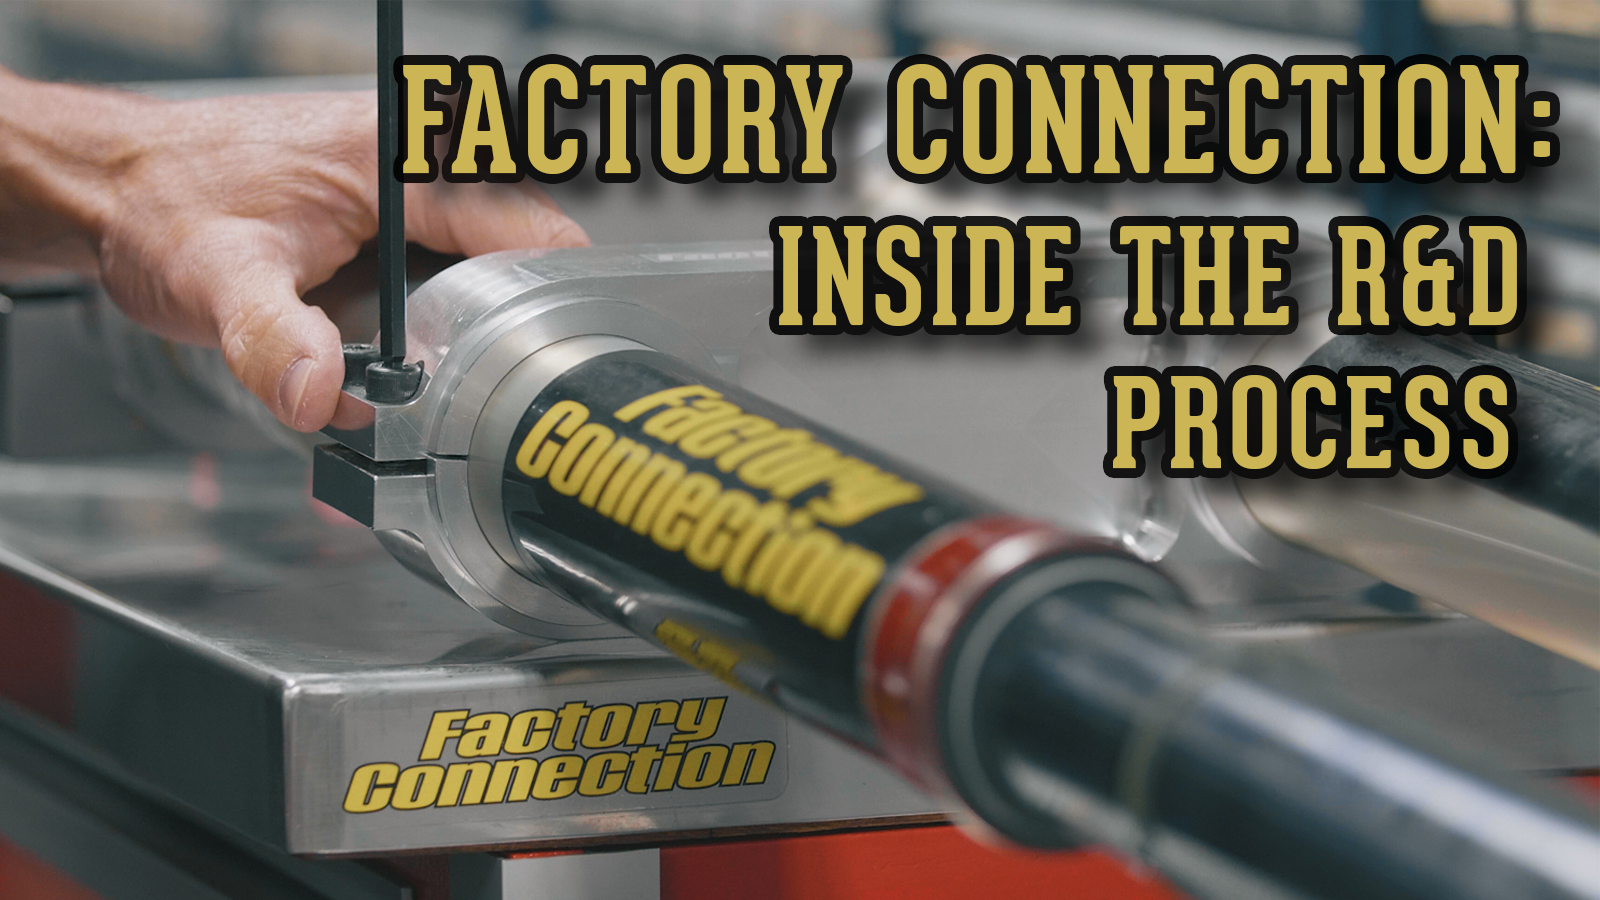 Factory Connection: Inside The R&D Process